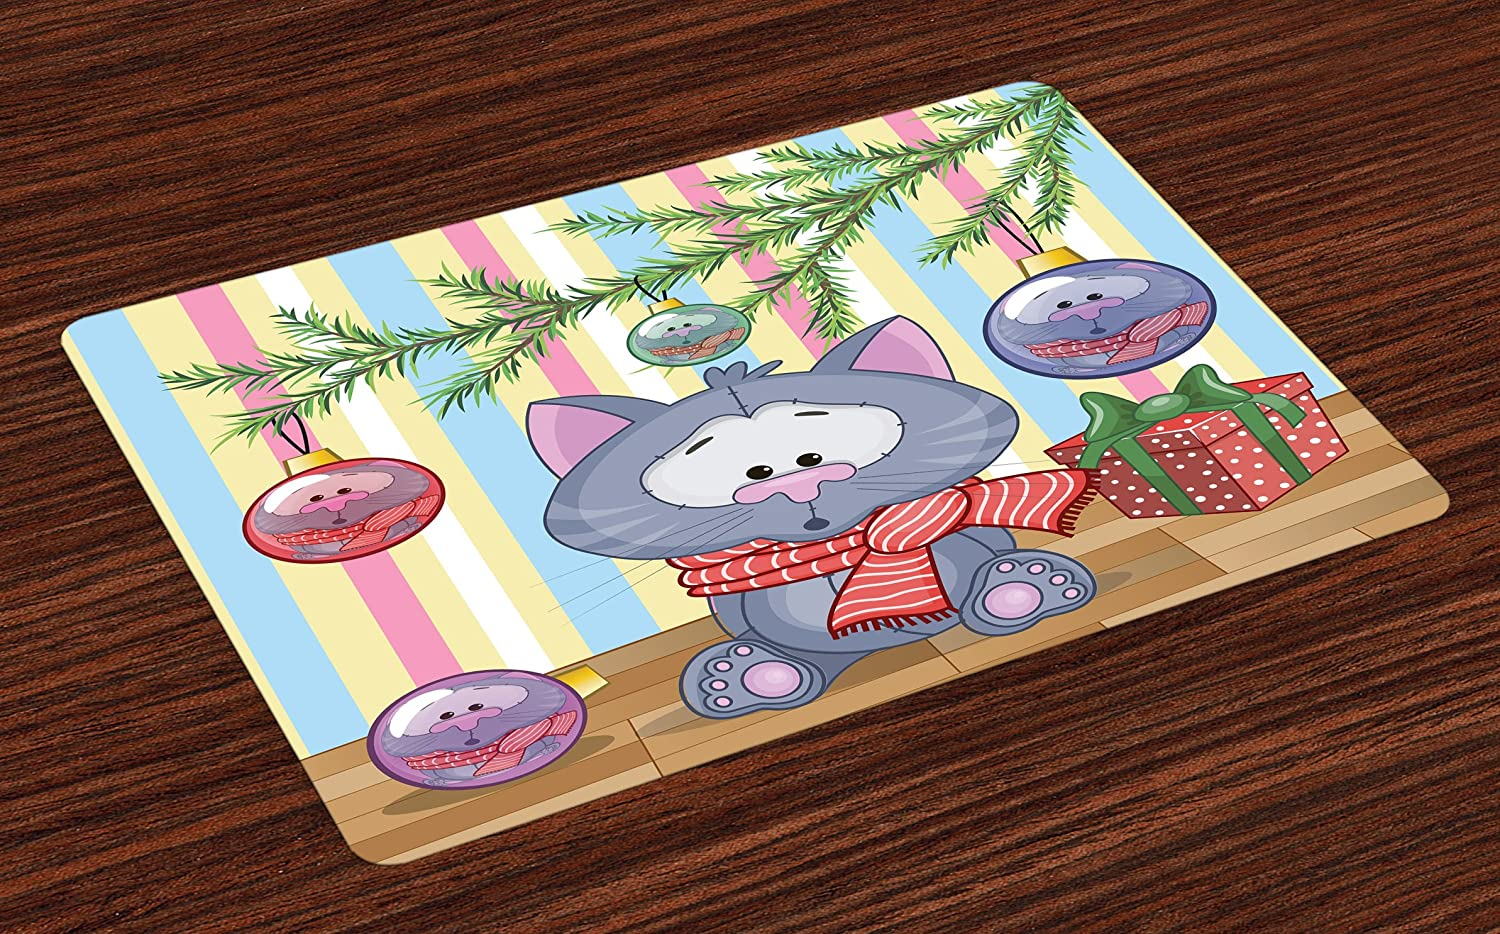 Ambesonne Christmas Place Mats Set of 4, Kitten with Scarf Under The Tree with Ball Celebration and Gift Box Cat Themed, Washable Fabric Placemats for Dining Room Kitchen Table Decor, Multicolor